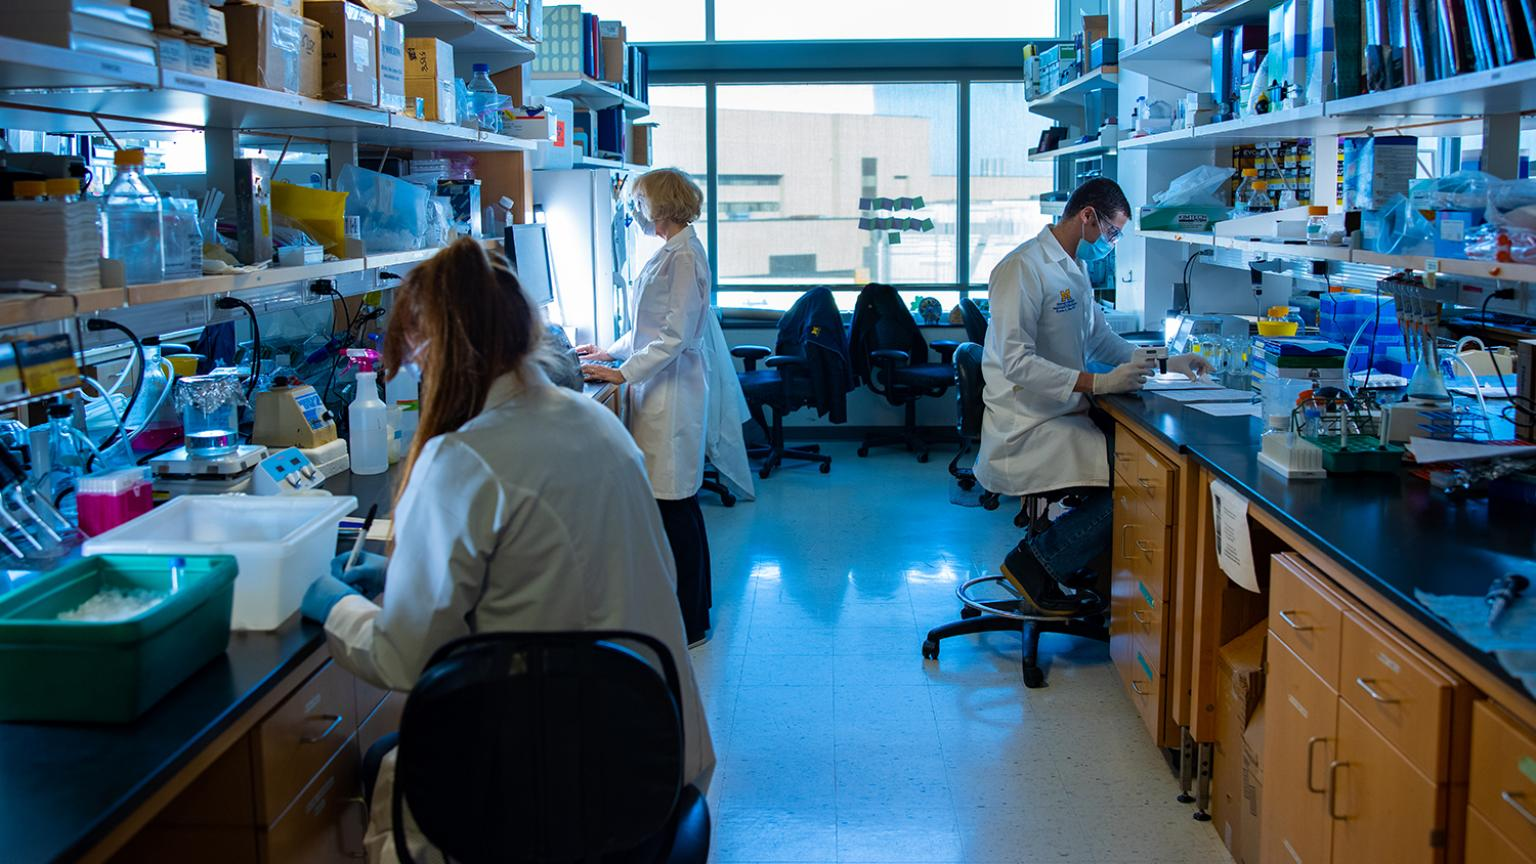 a photo inside the lab of the NeuroNetwork for Emerging Therapies